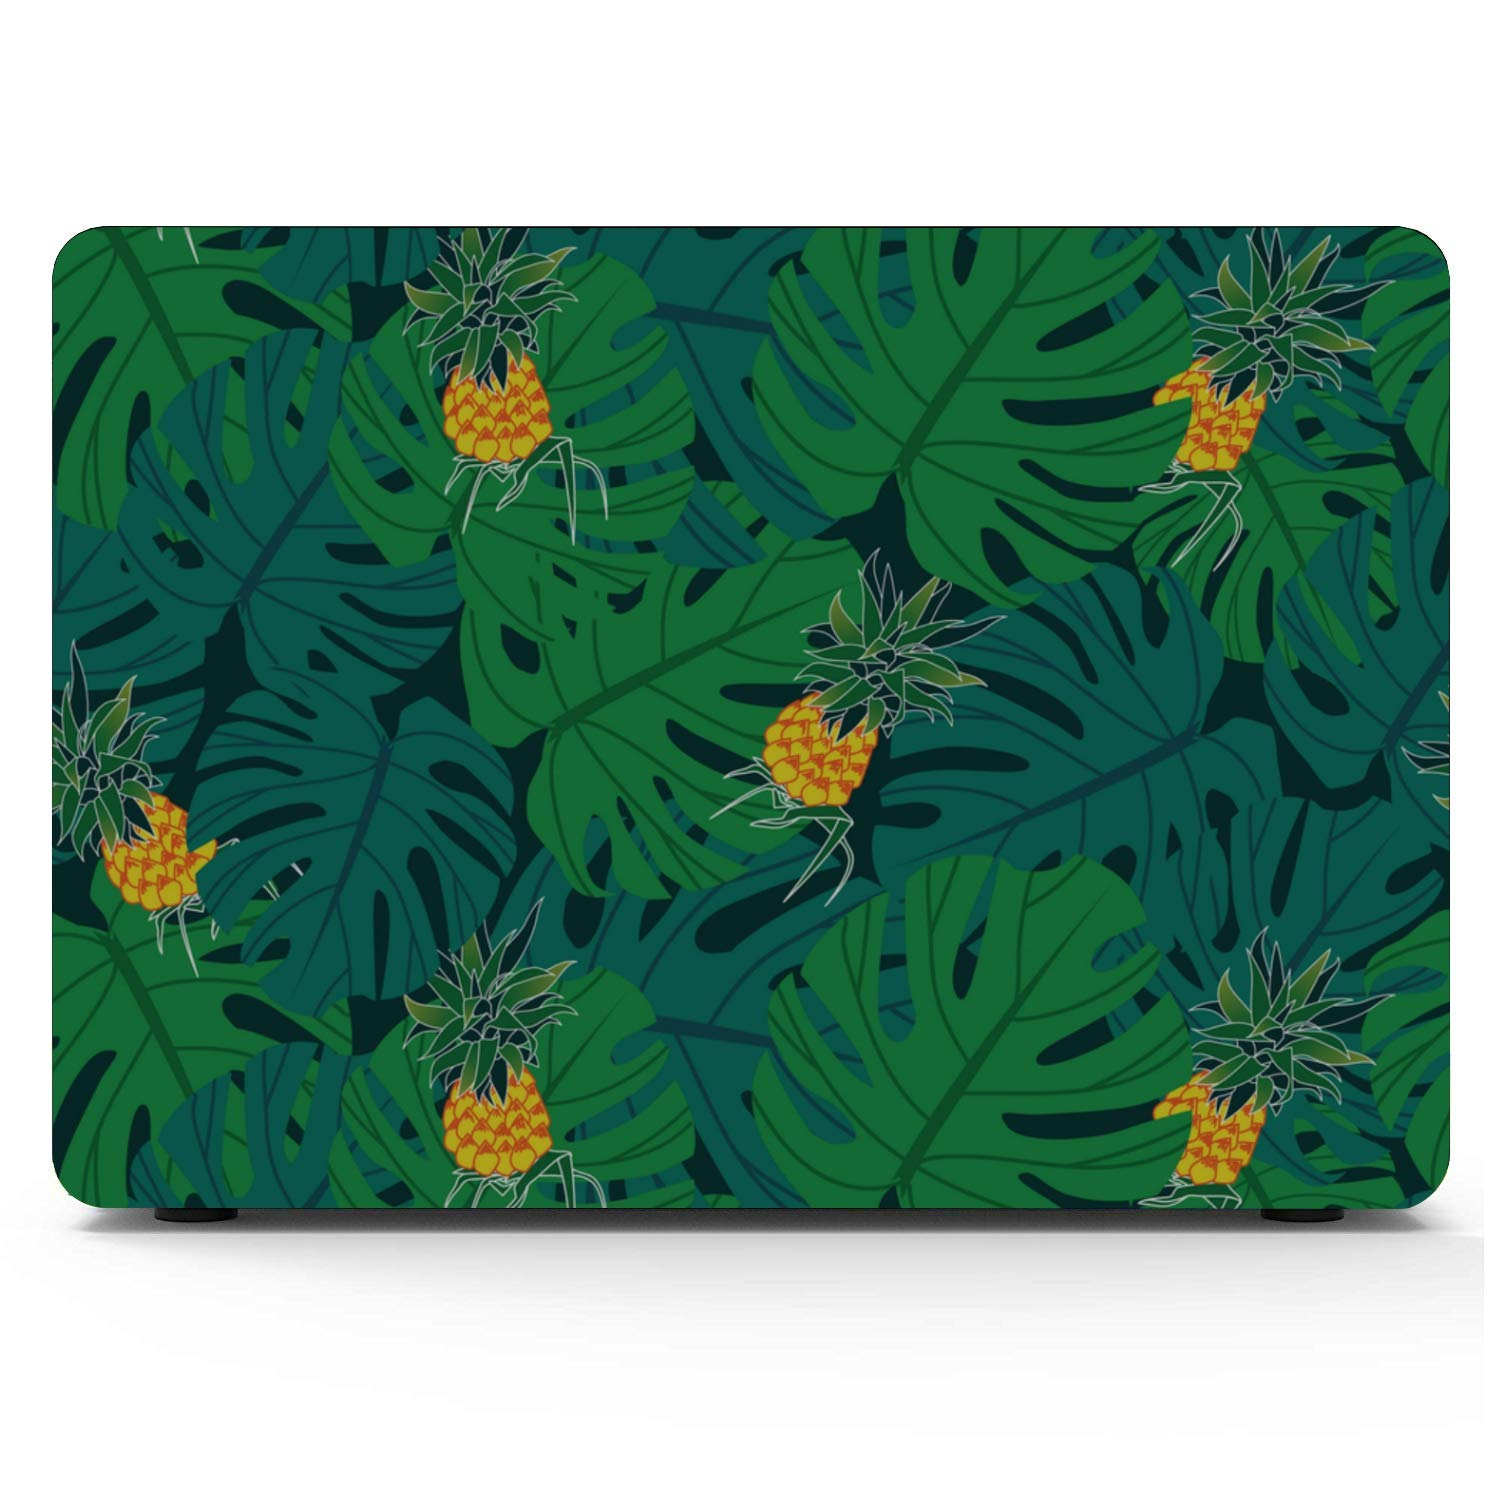 MacBook Air 2018 Case Summer Sweet Fresh Fruit Pineapple Plastic Hard Shell Compatible Mac Air 11 Pro 13 15 2018 MacBook Pro Case Protection for MacBook 2016-2019 Version